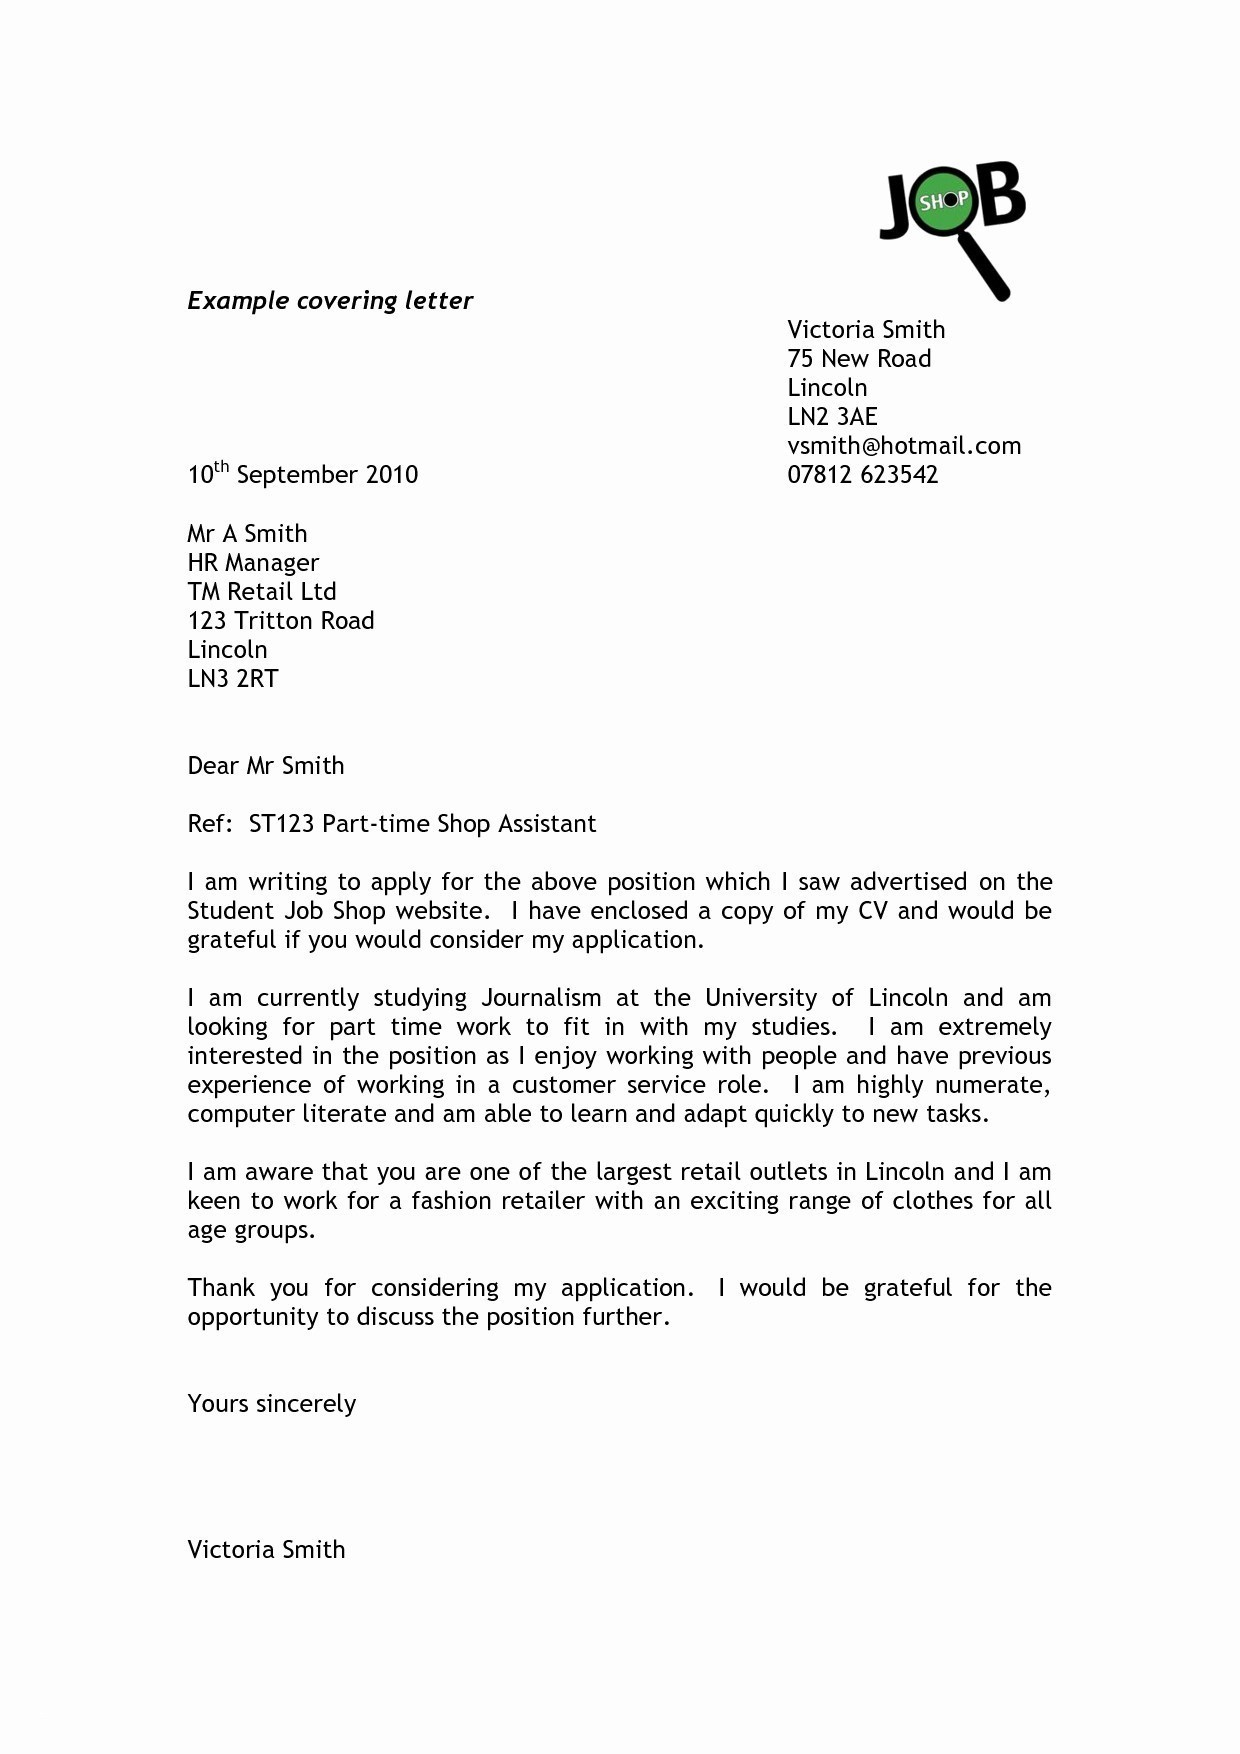 Interview Cover Letter Template - format Covering Letter for Cv